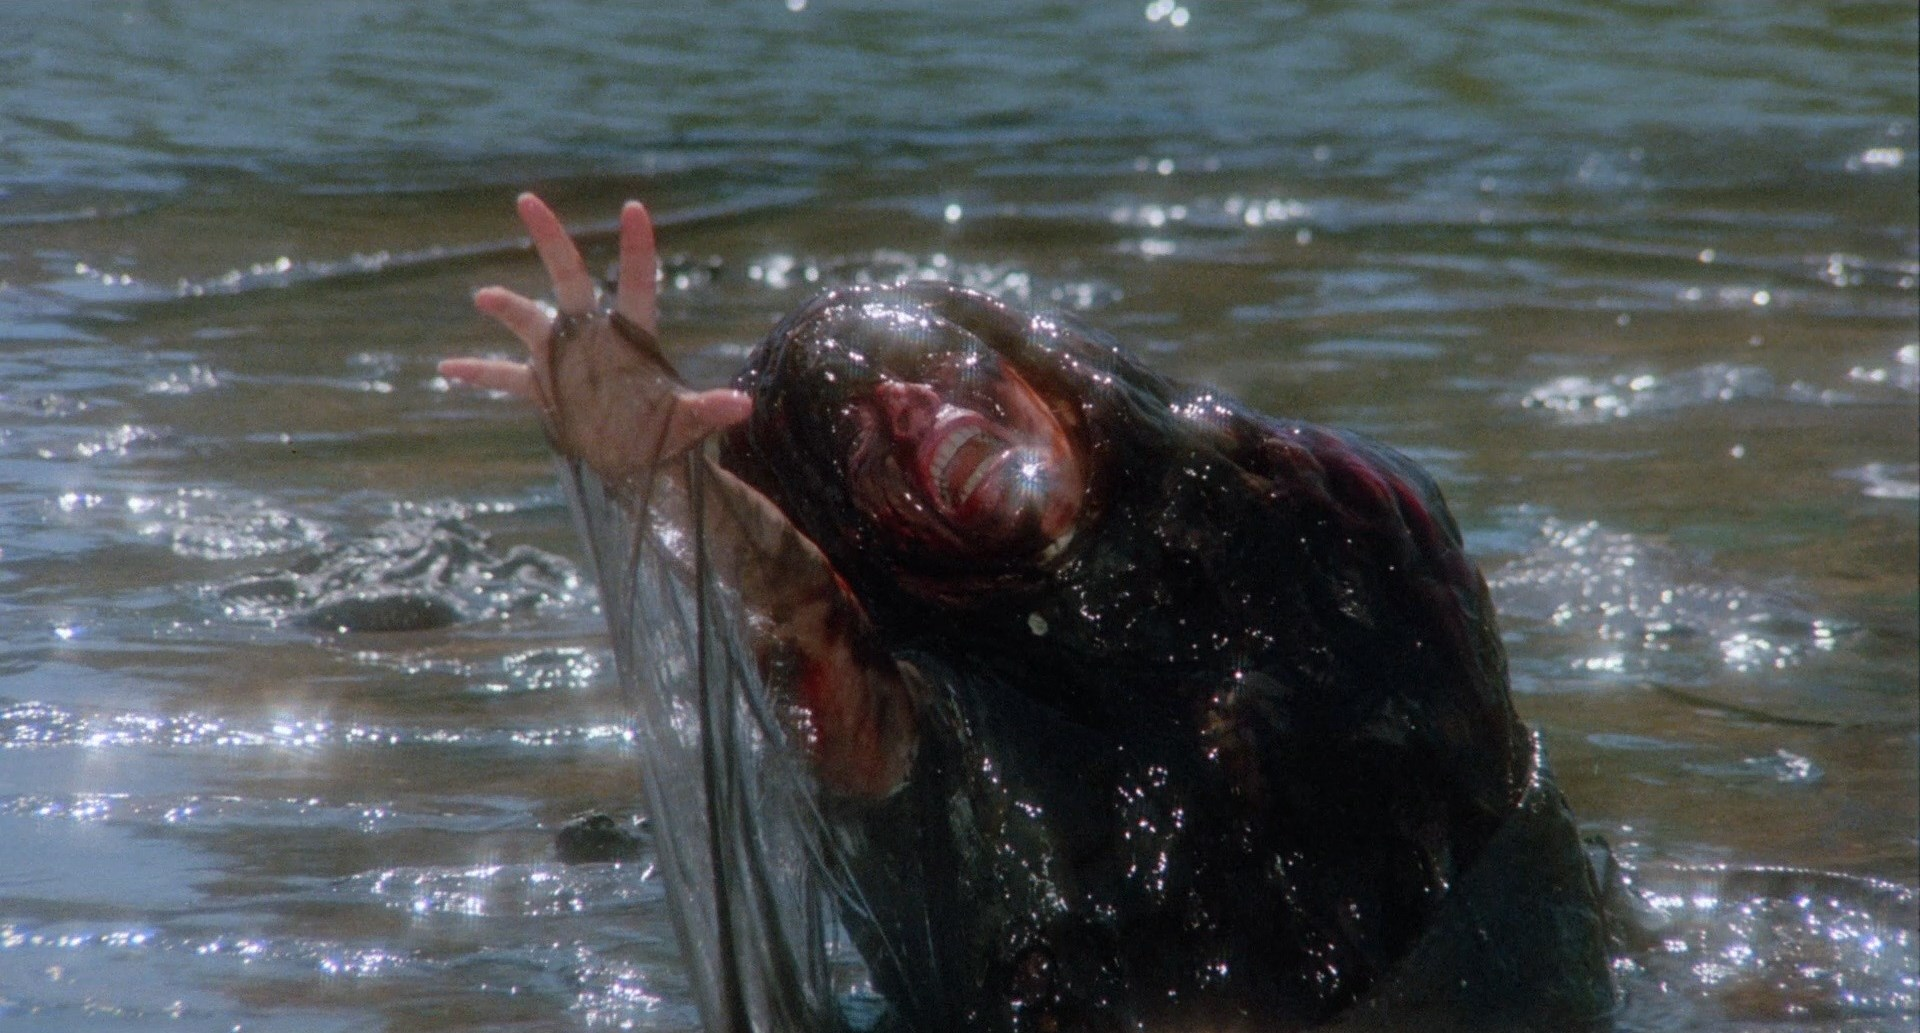 A victim of the creature in the lake in The Raft episode of Creepshow II (1987)